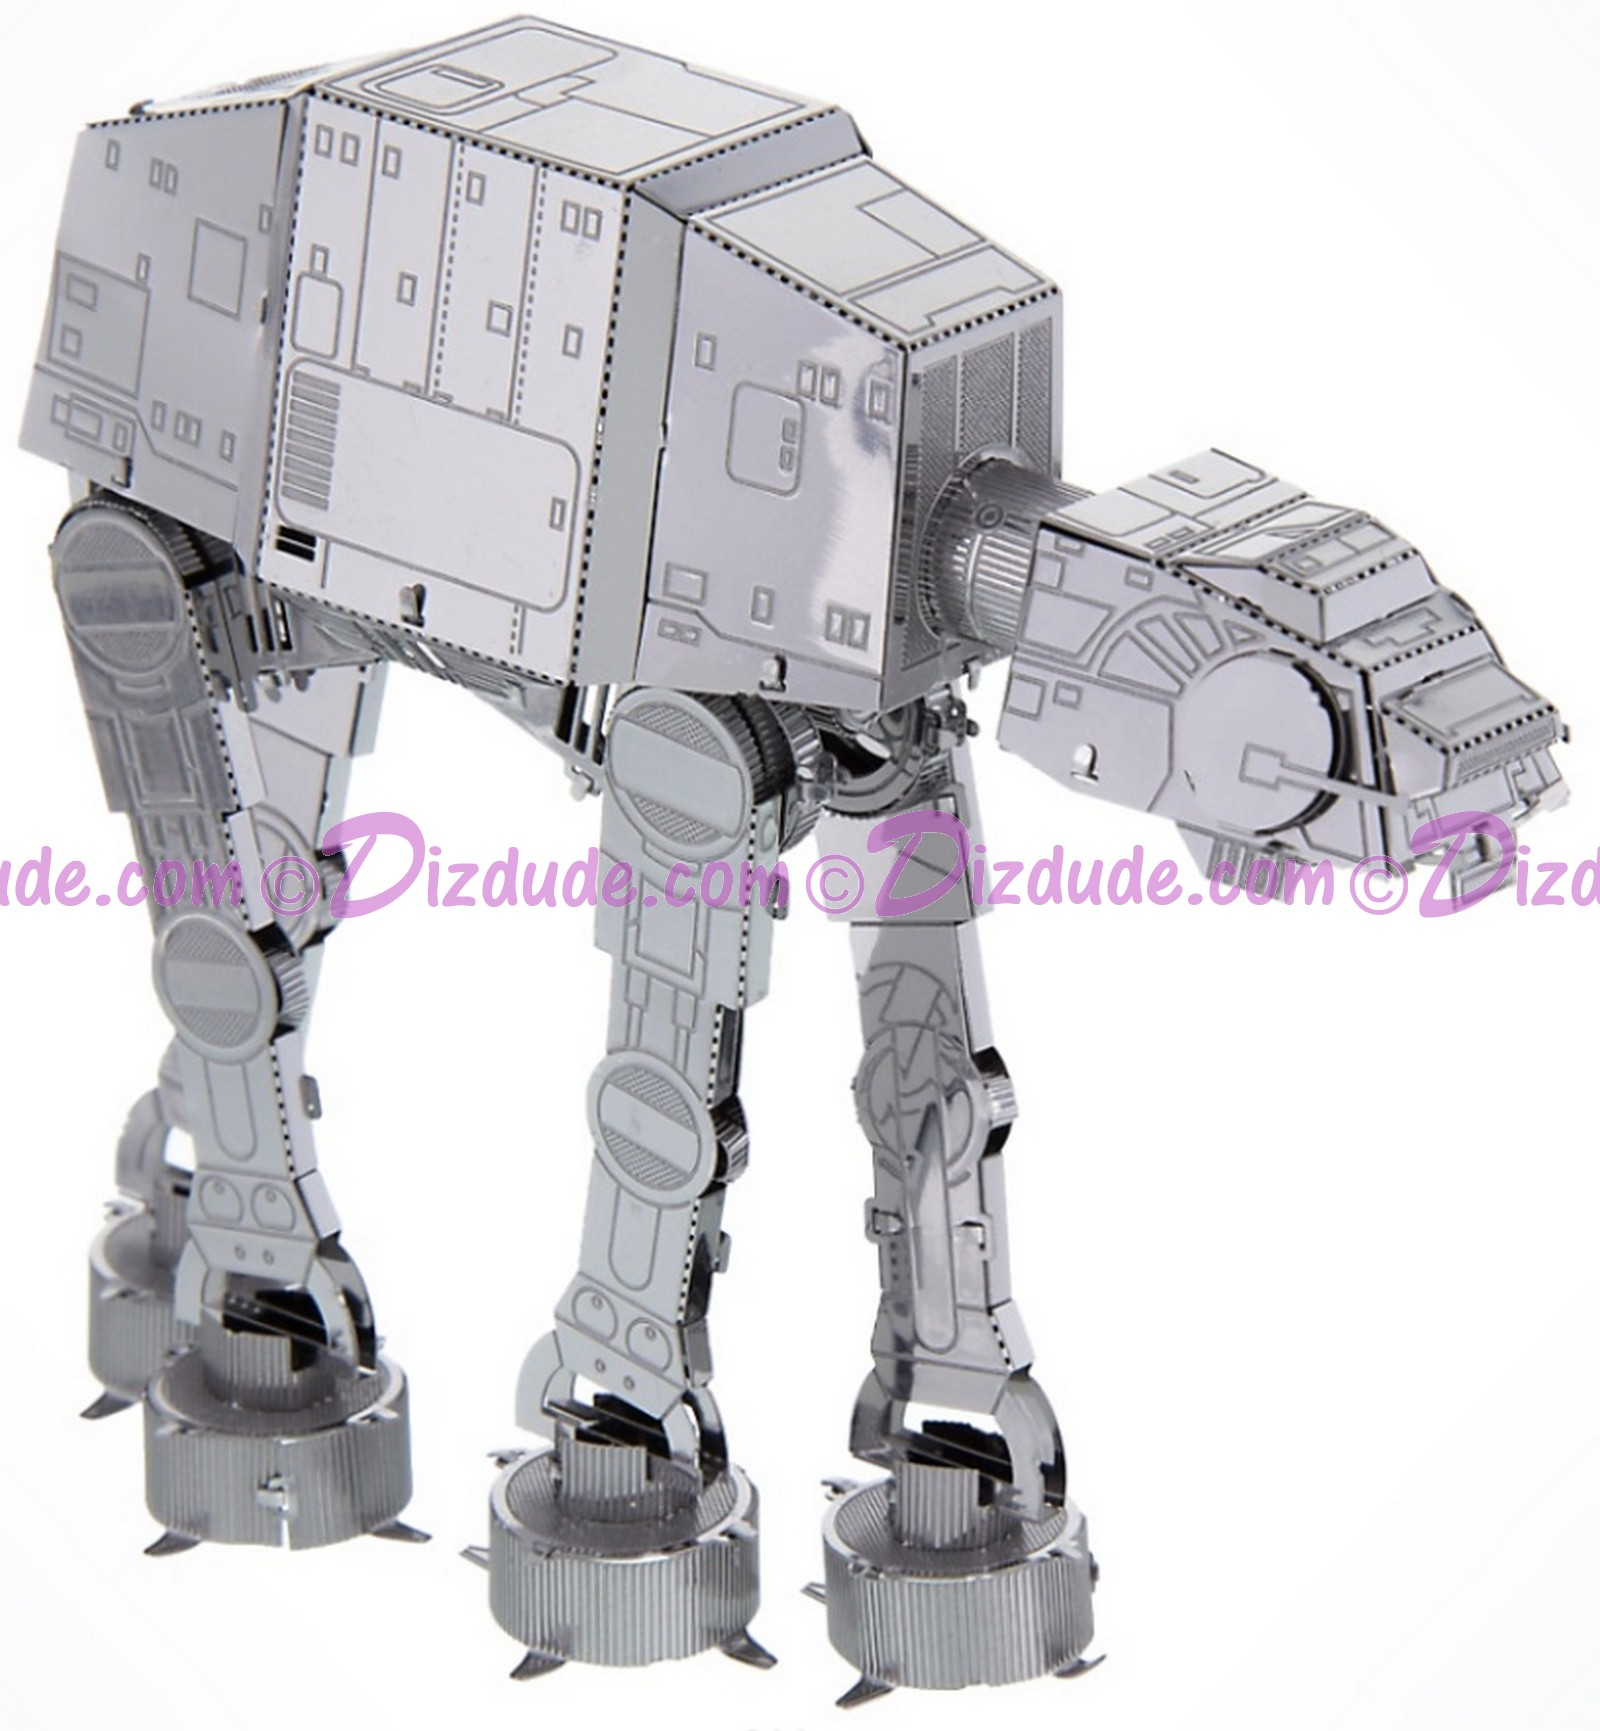 Disney Star Wars AT-AT 3D Metal Model Kit © Dizdude.com